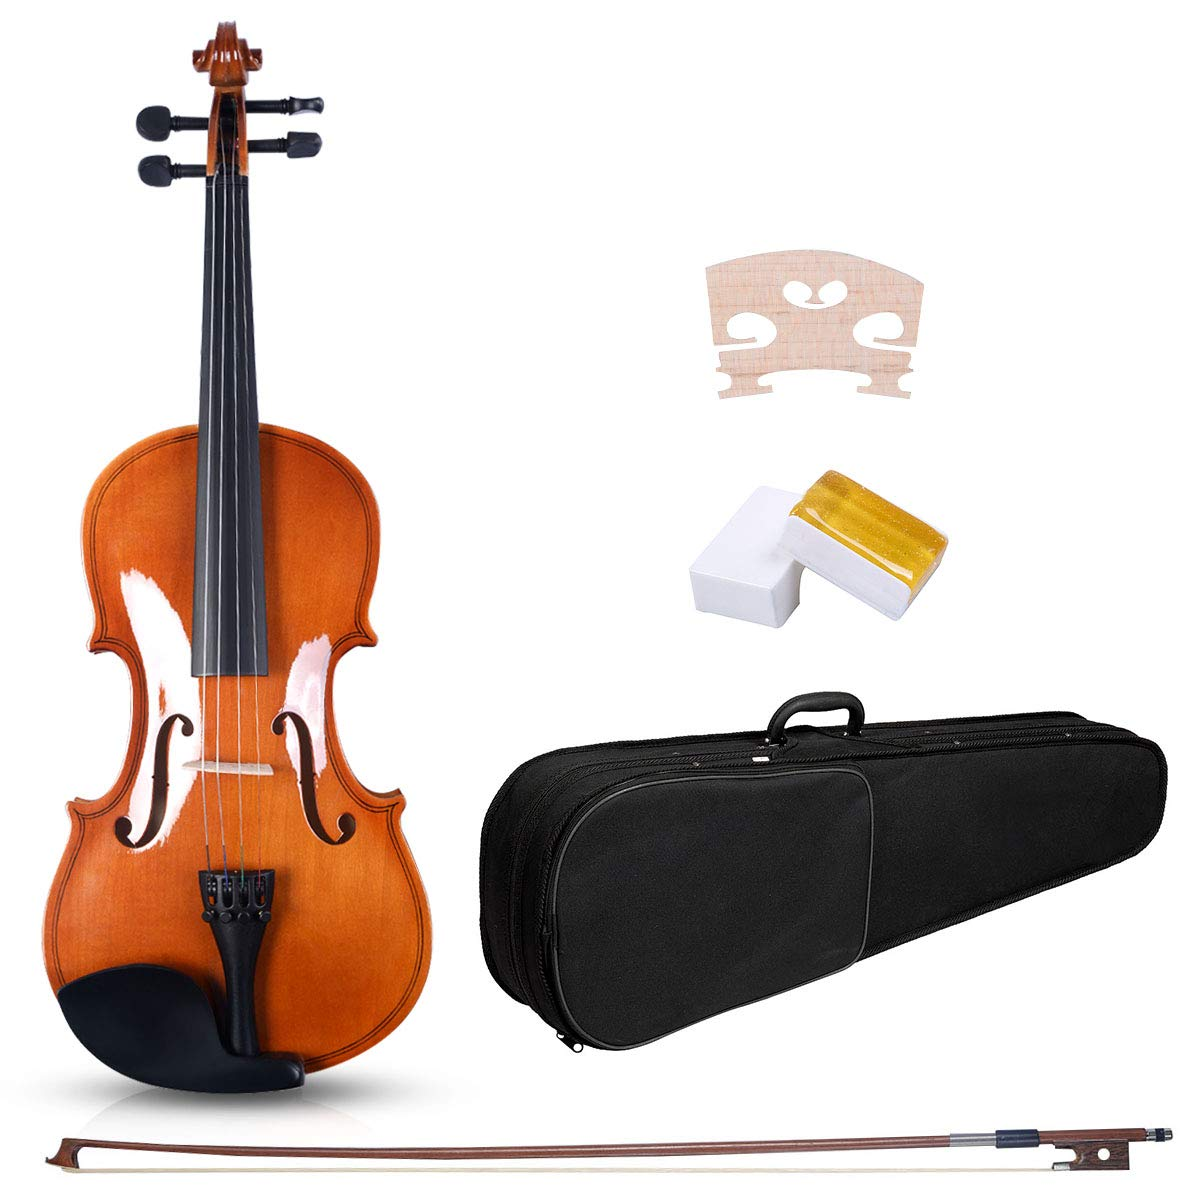 Goplus Acoustic Violin, 4/4 Full Size Solid Wood Fiddle w/Case, Bow, Rosin and Chin Rest for Beginners and Students (burlywood) by Goplus